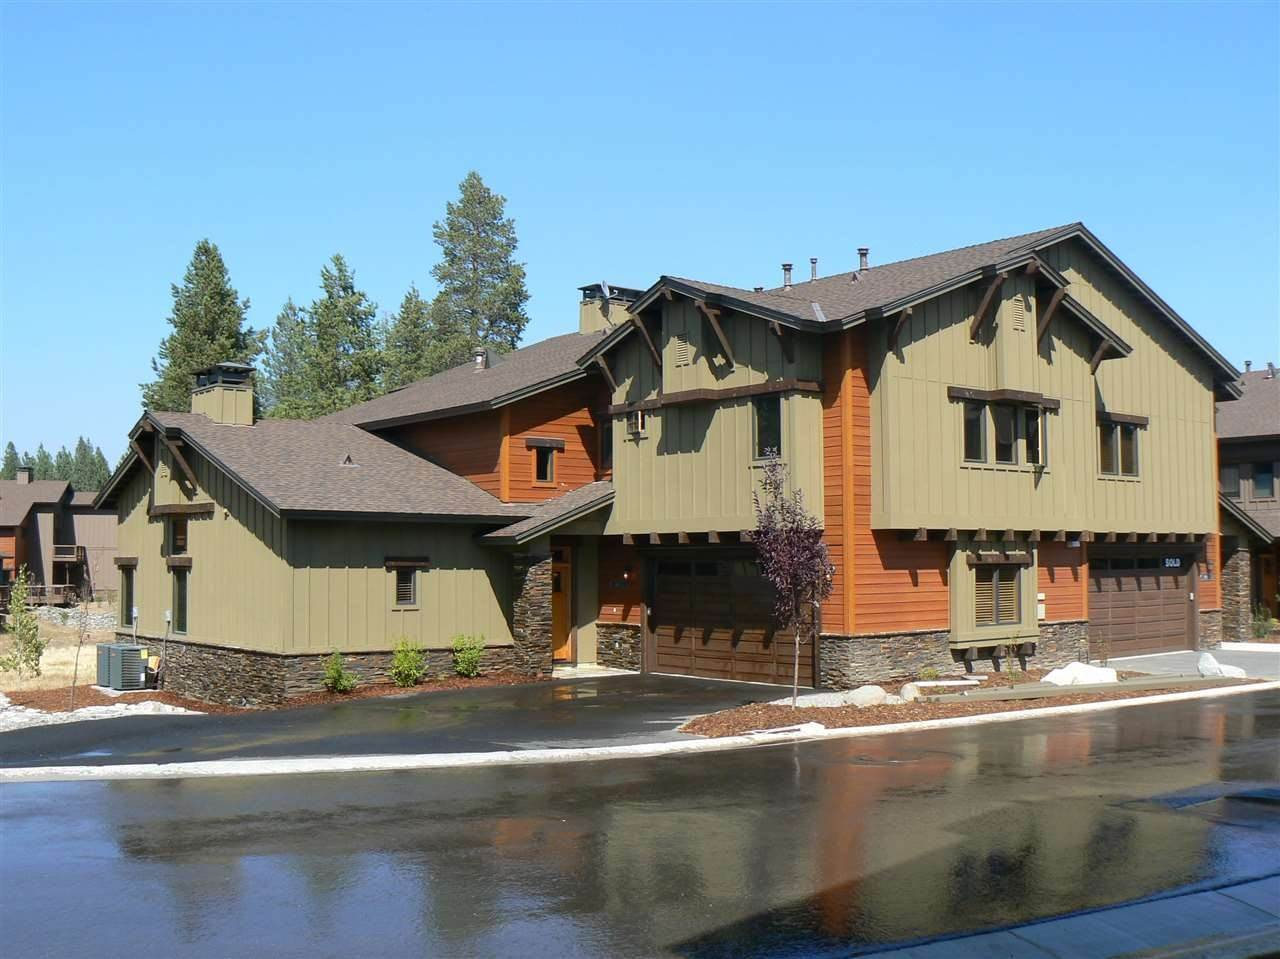 Condo / Townhouse at 11837 Hope Court Truckee, California 96161 United States